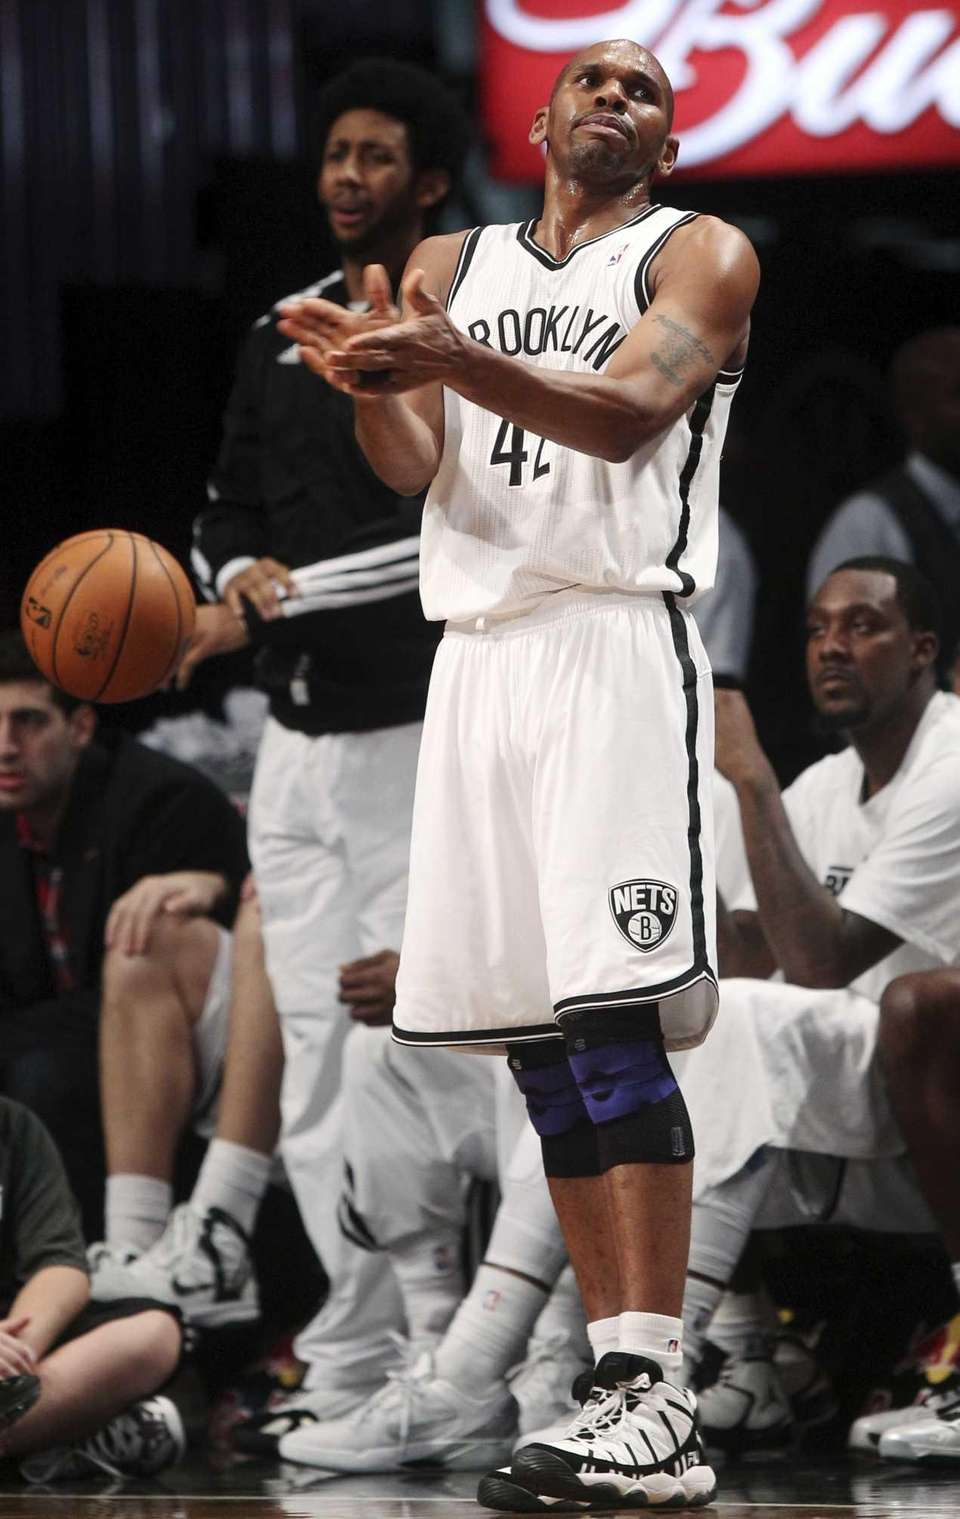 Brooklyn Nets' Jerry Stackhouse reacts after losing the